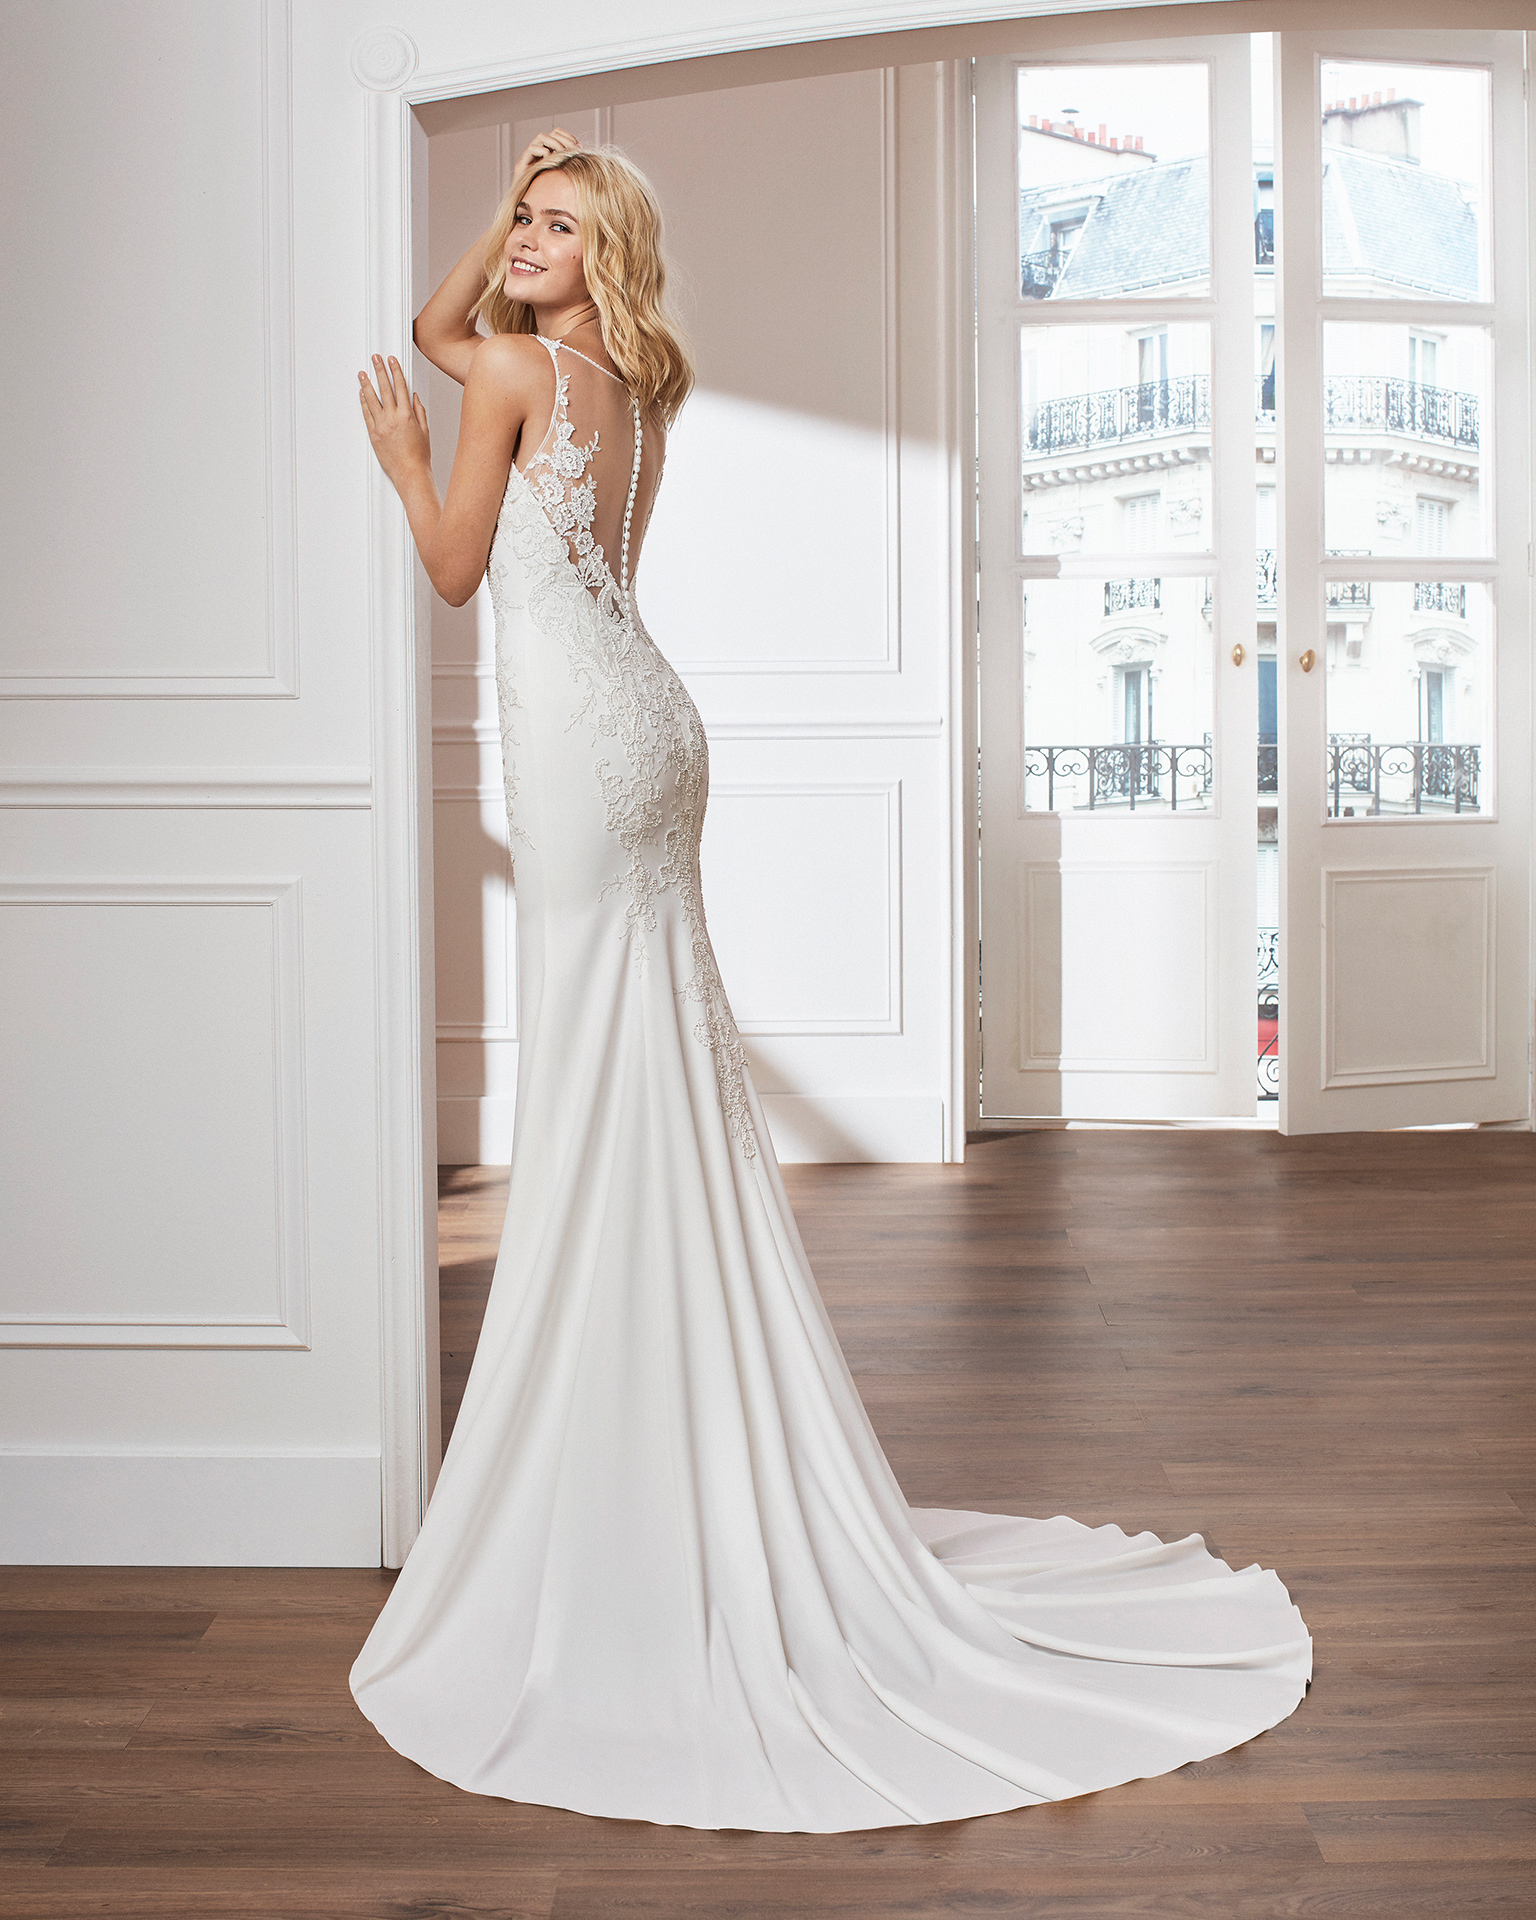 Sheath-style wedding dress in crepe. Sleeveless V-neck beaded lace bodice with train. Available in natural. 2019  Collection.